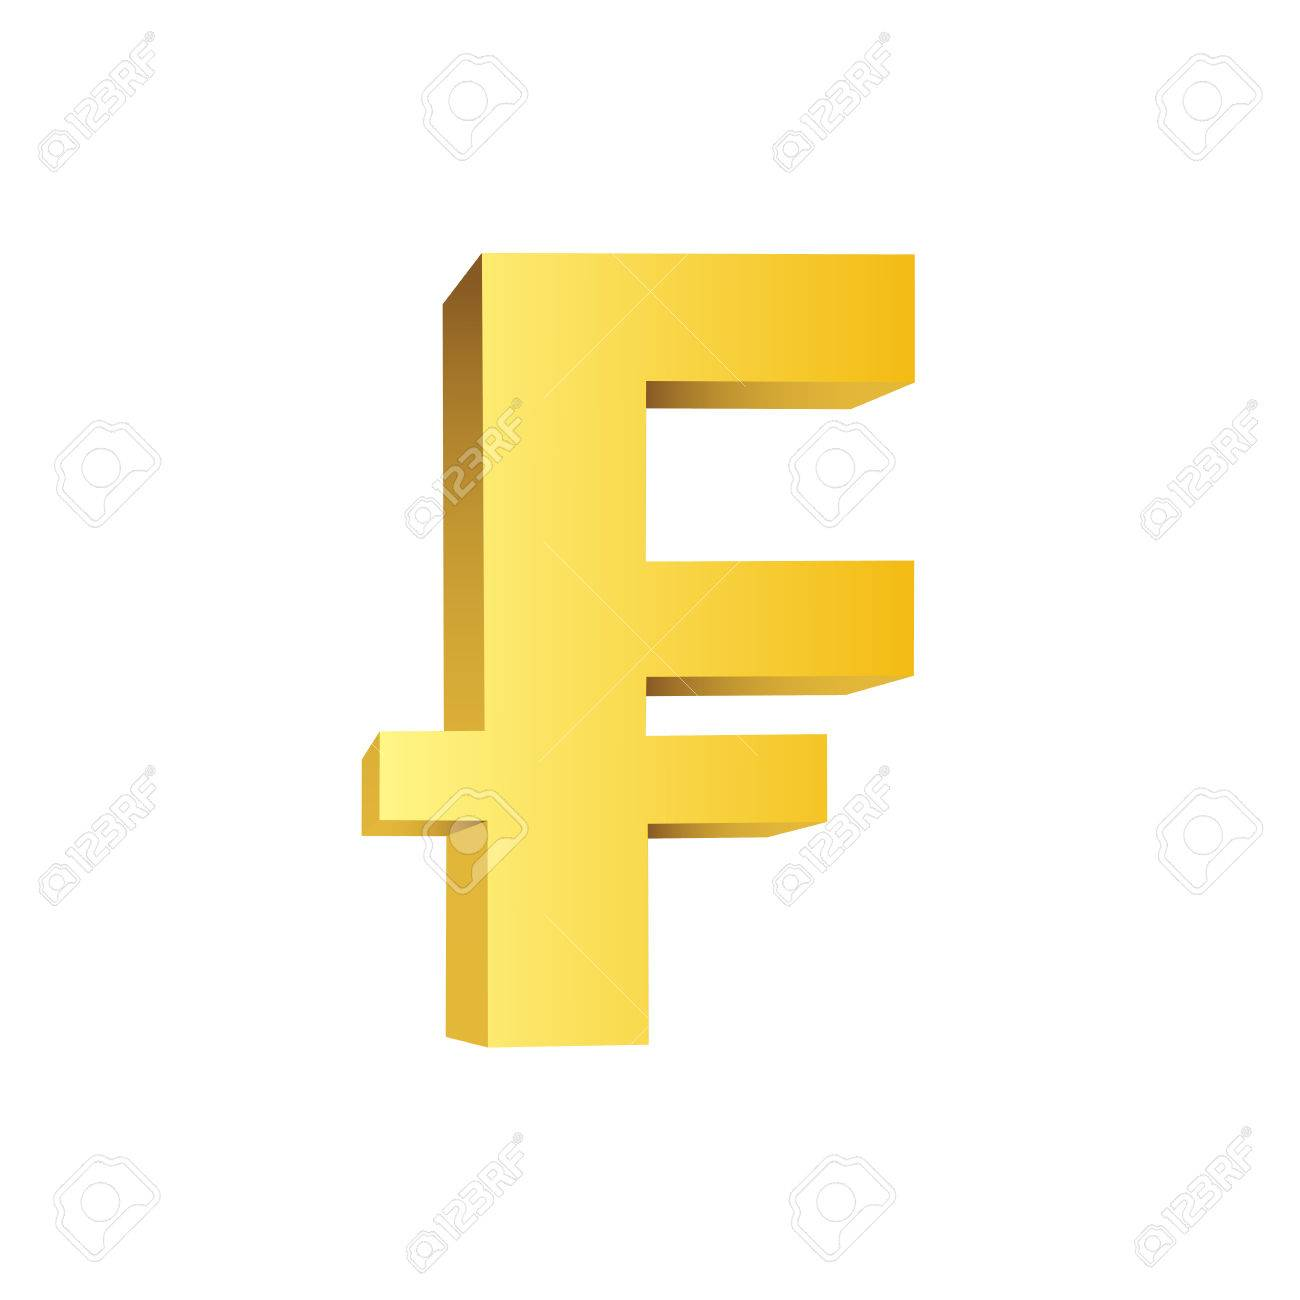 This Is A Golden Currency Symbol Of Franc Royalty Free Klipartlar